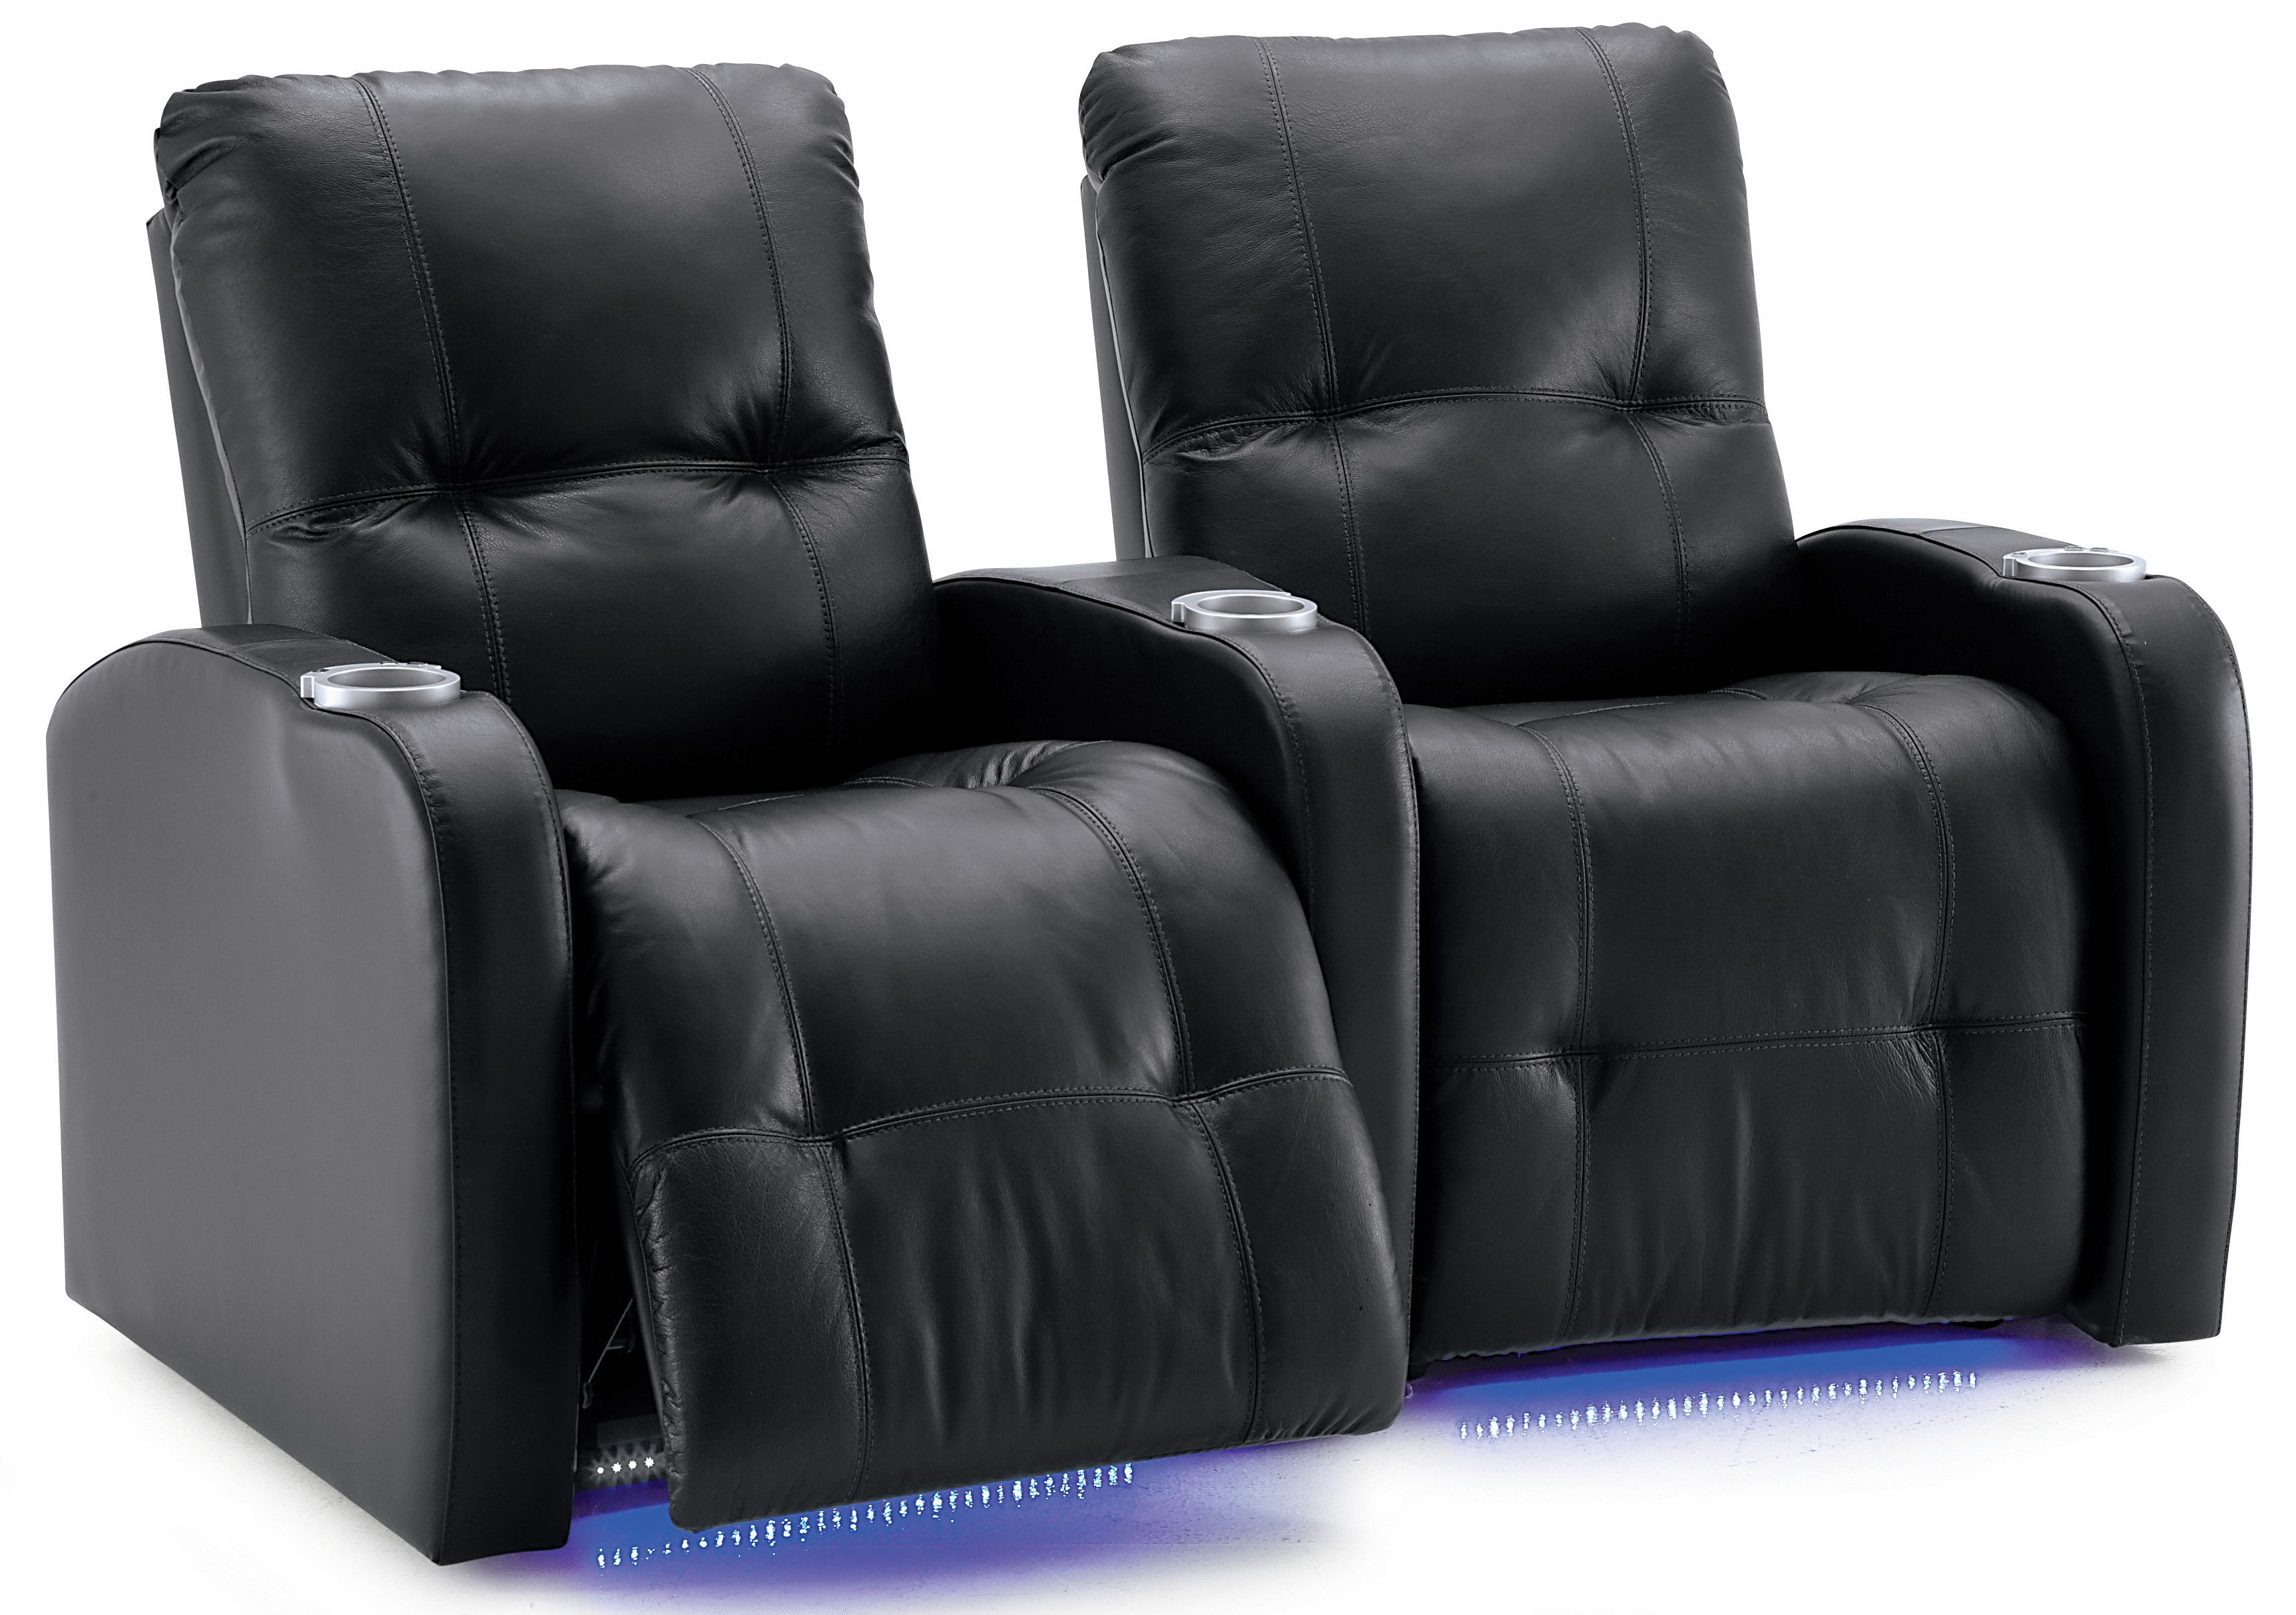 Palliser Auxiliary Manual Theater Seating - Item Number: 41450-5R+3R